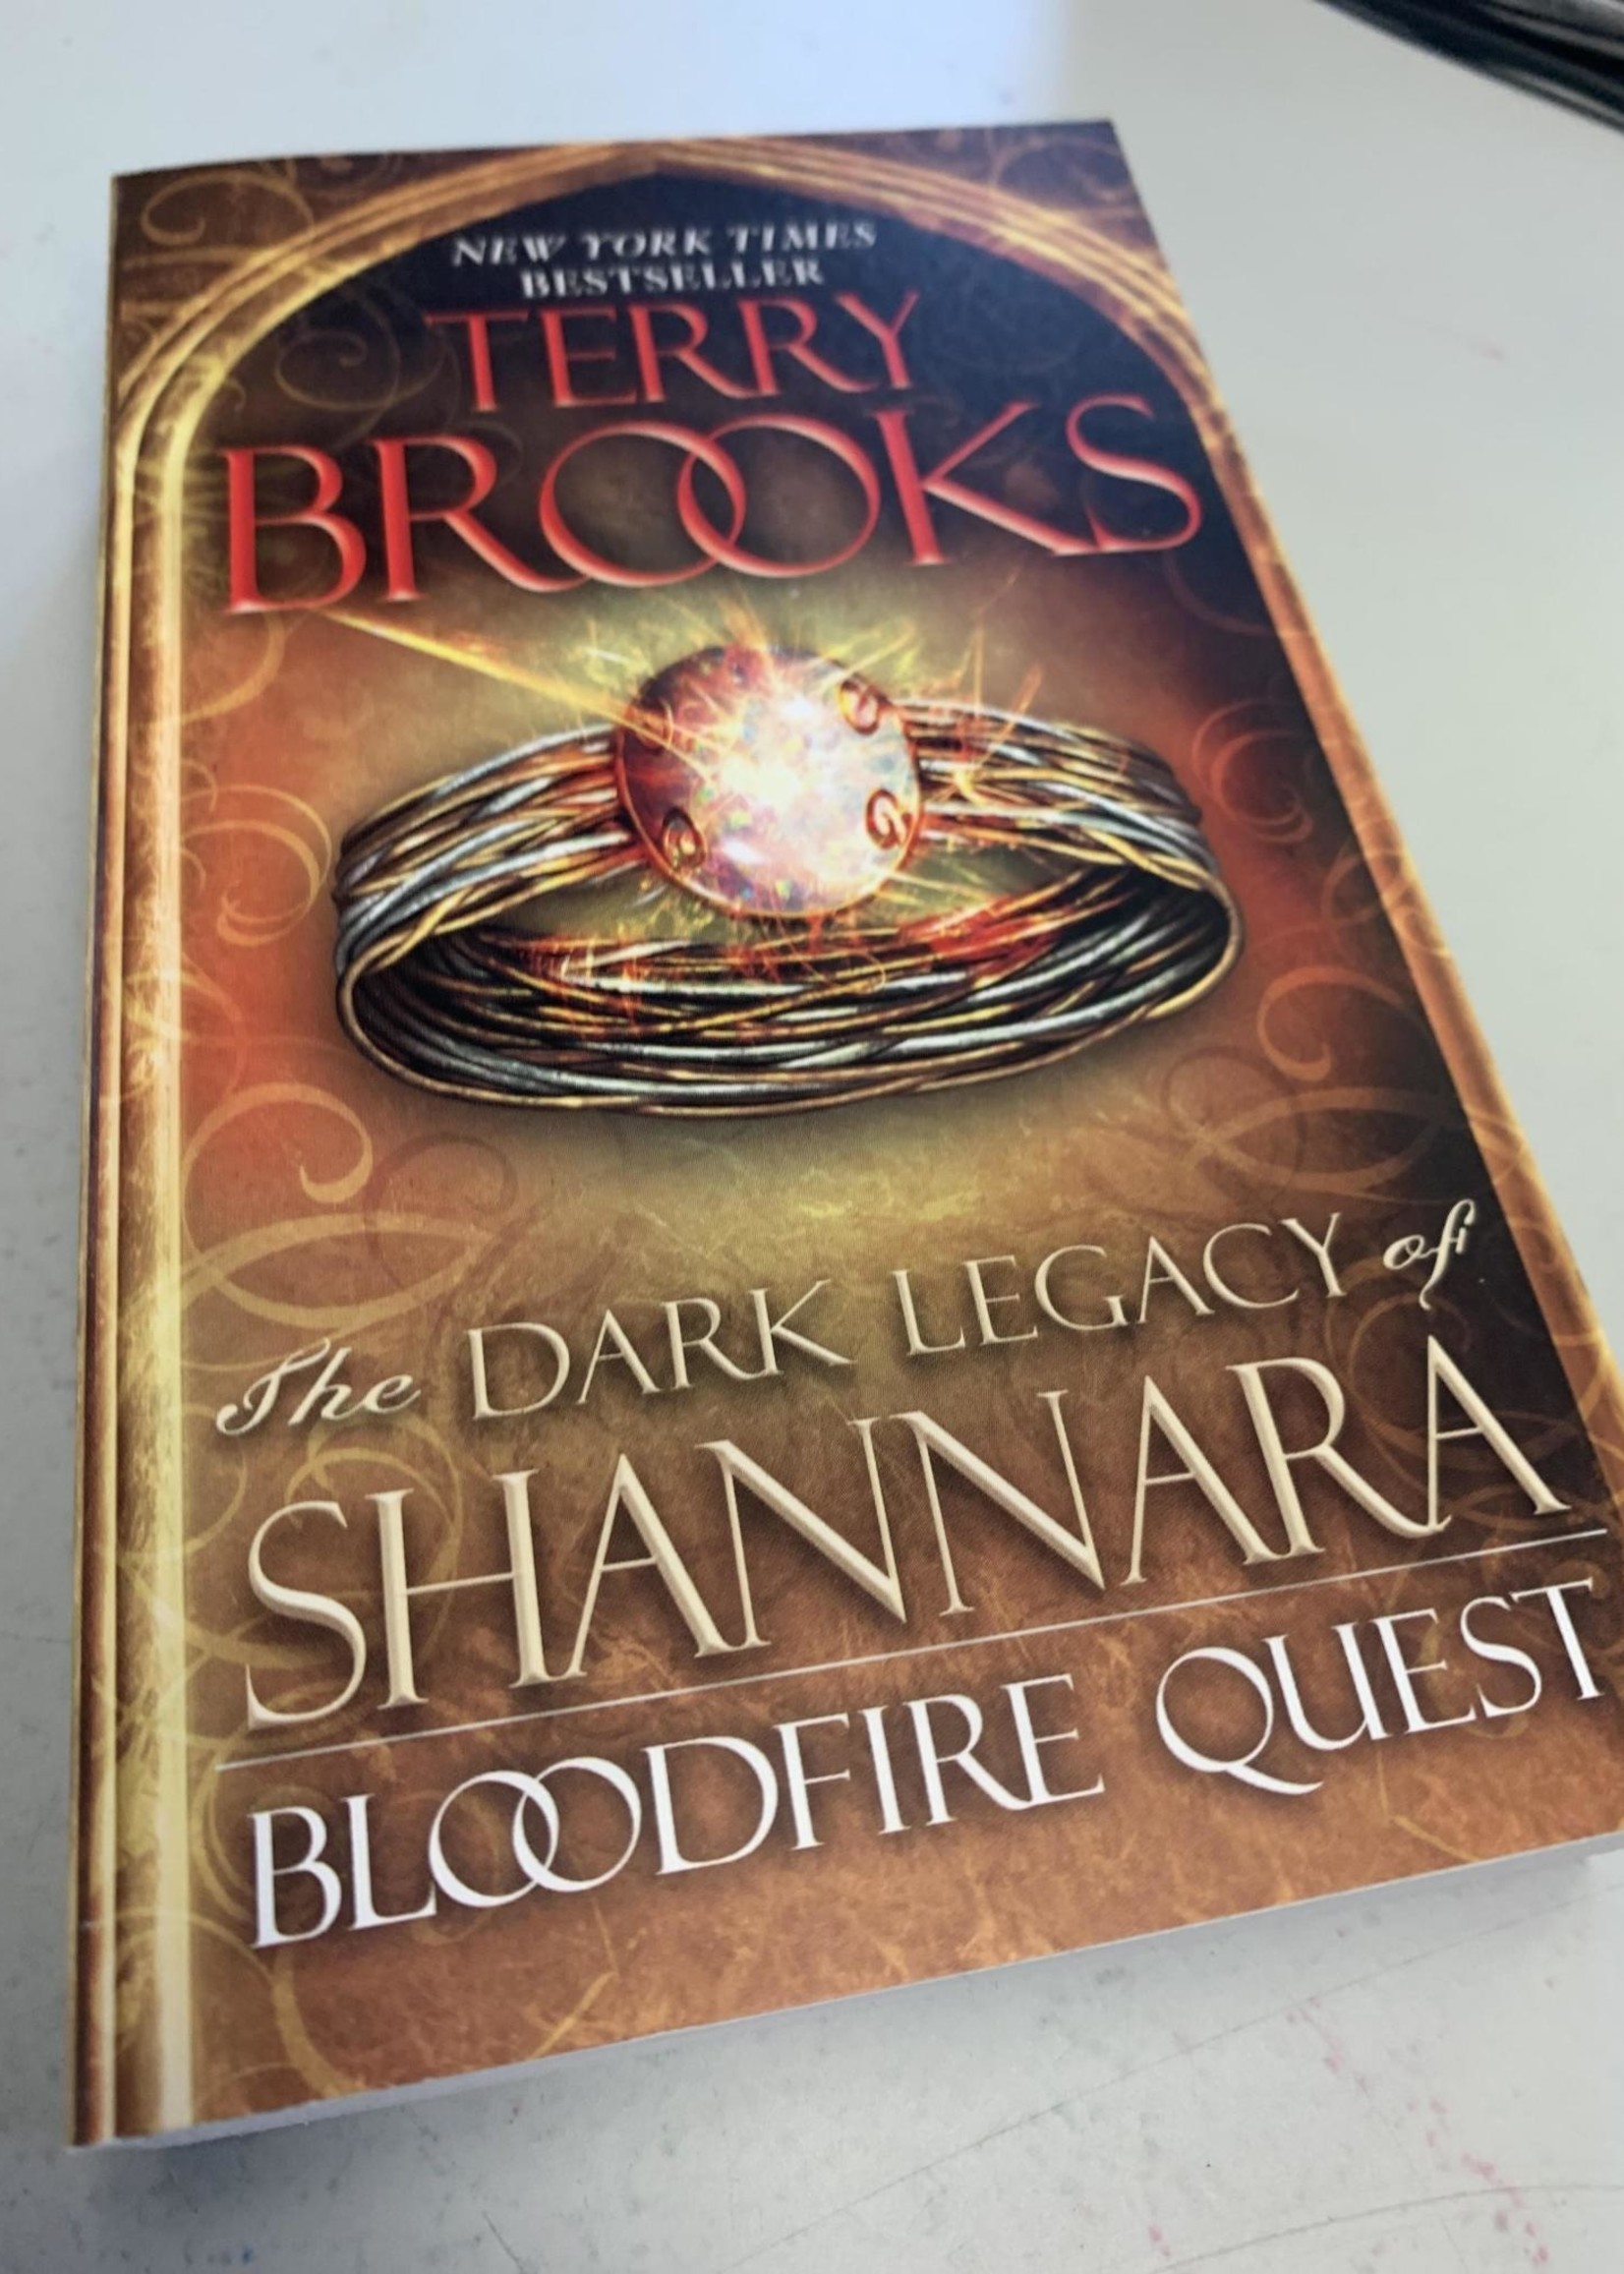 Bloodfire Quest - Terry Brooks